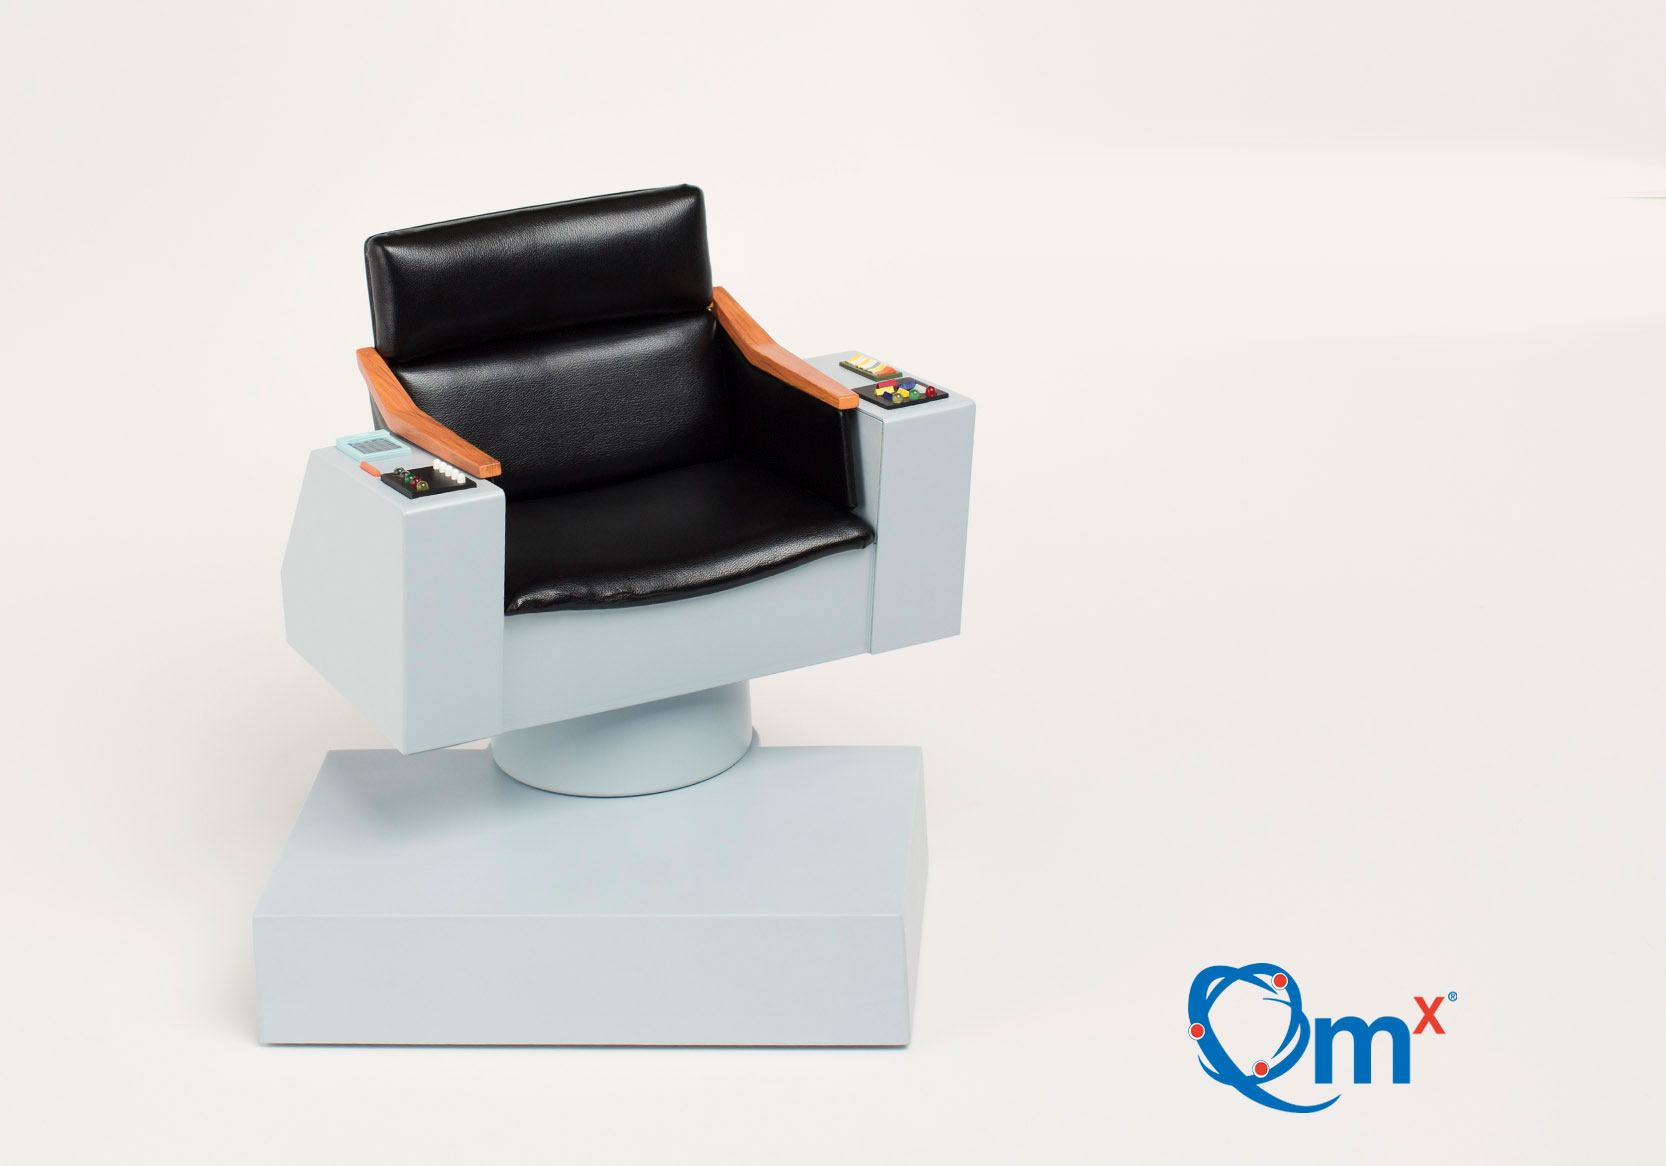 Star Trek TOS Replica 1/6 Captain's Chair 20 cm